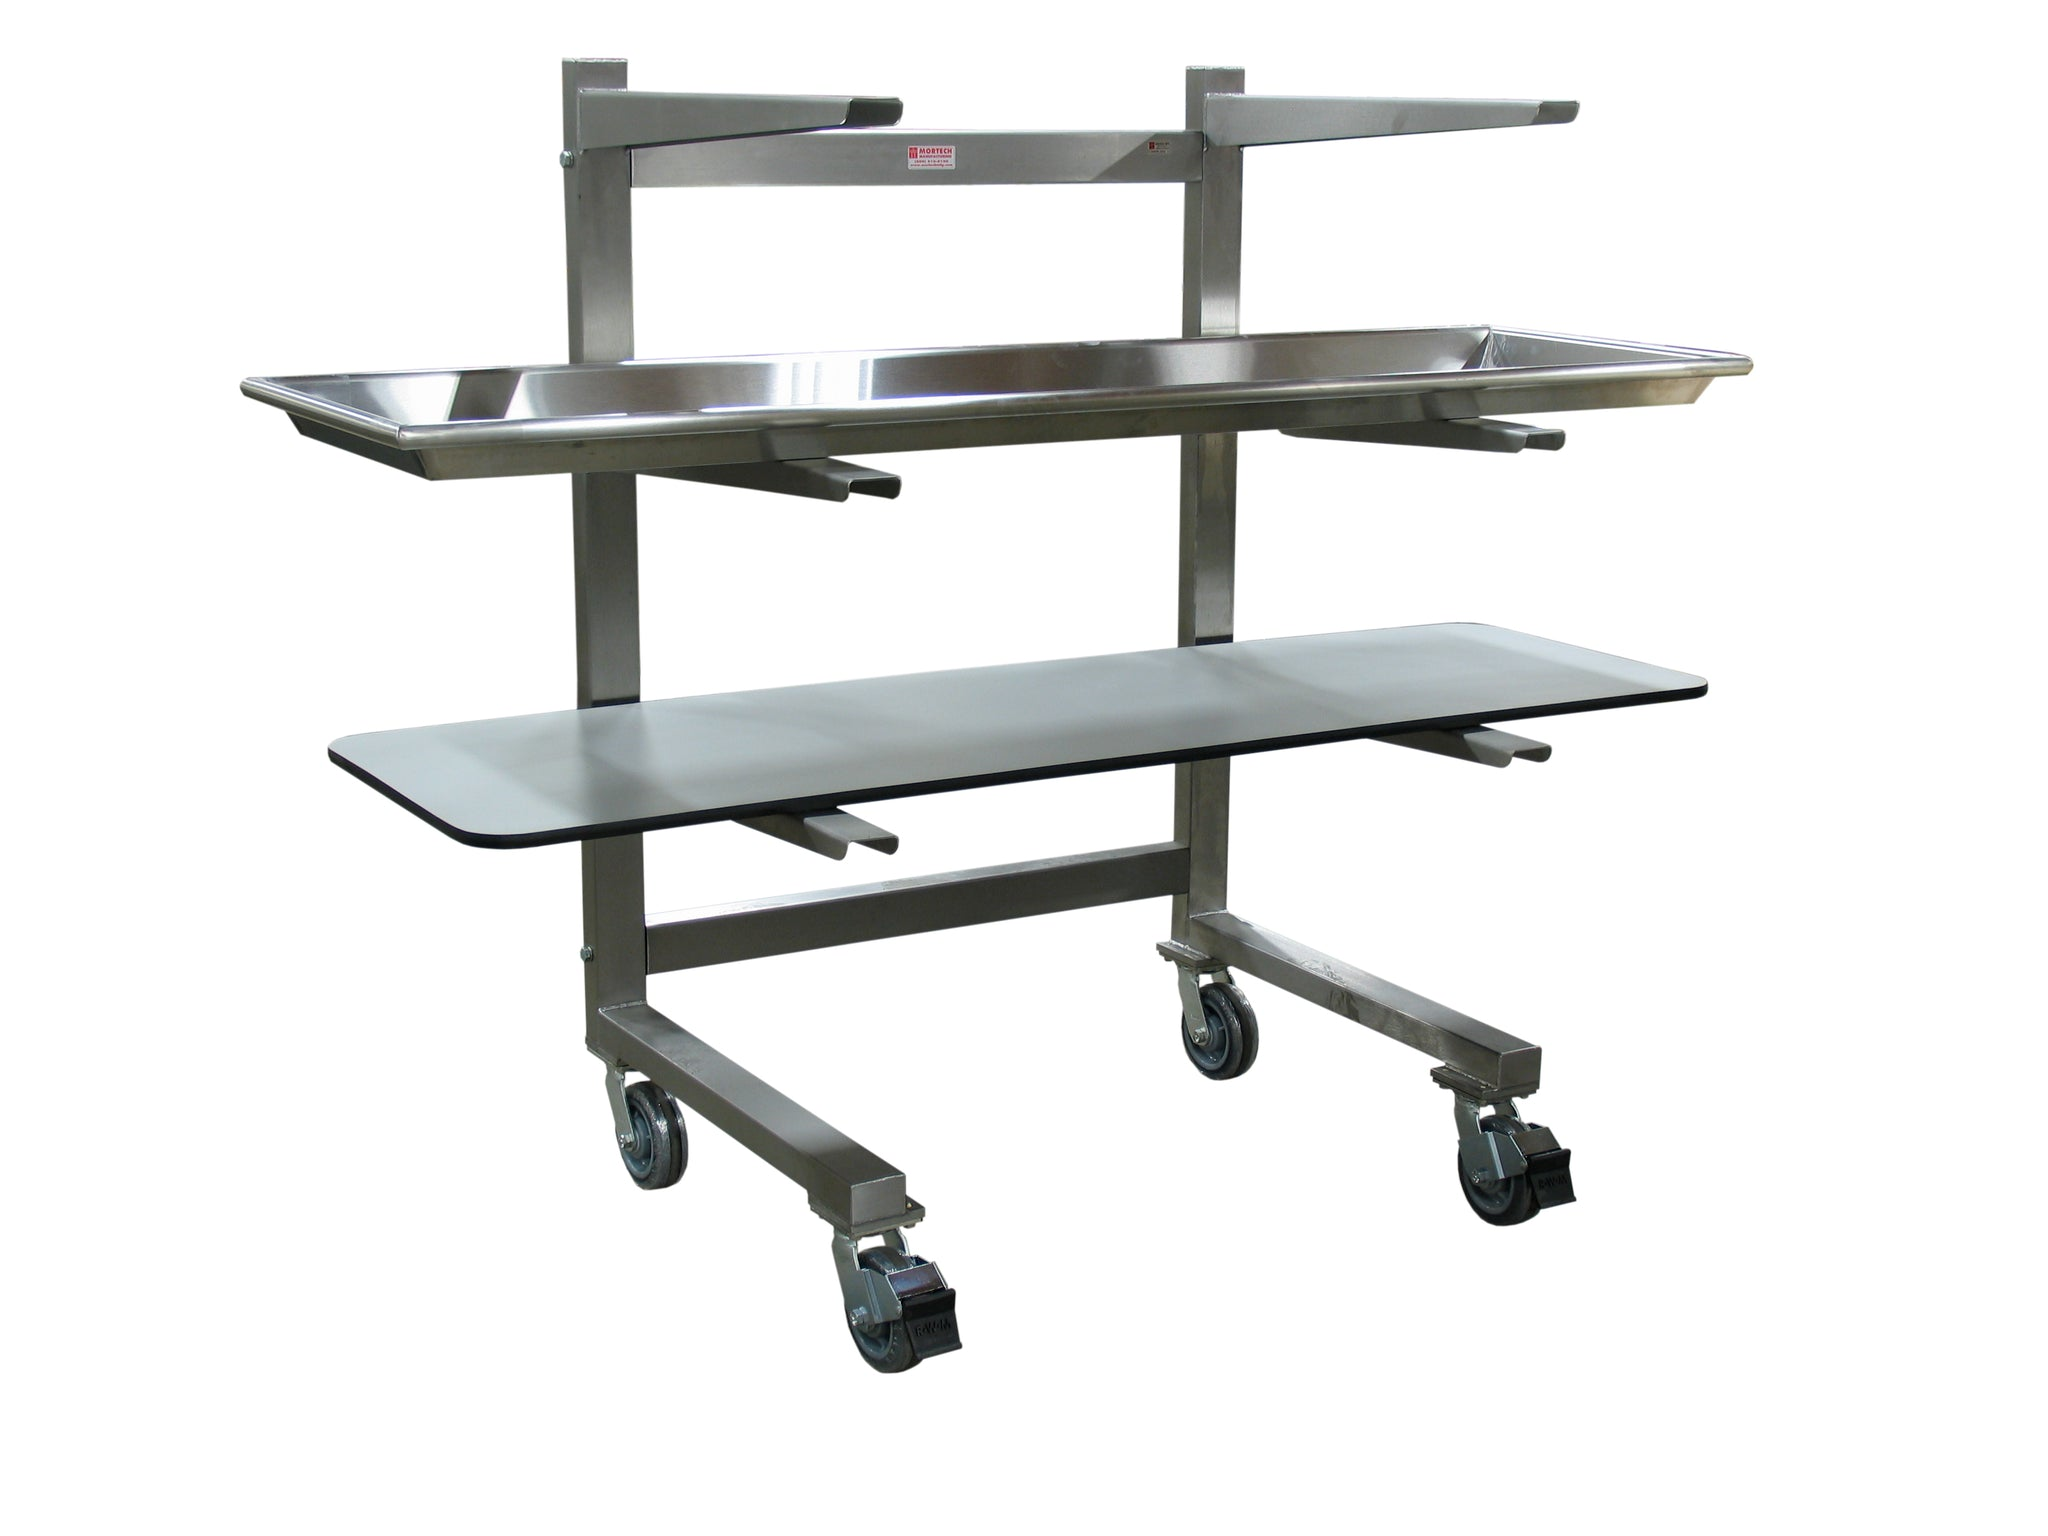 MODEL 7005-4 Cantilever Storage System with Casters